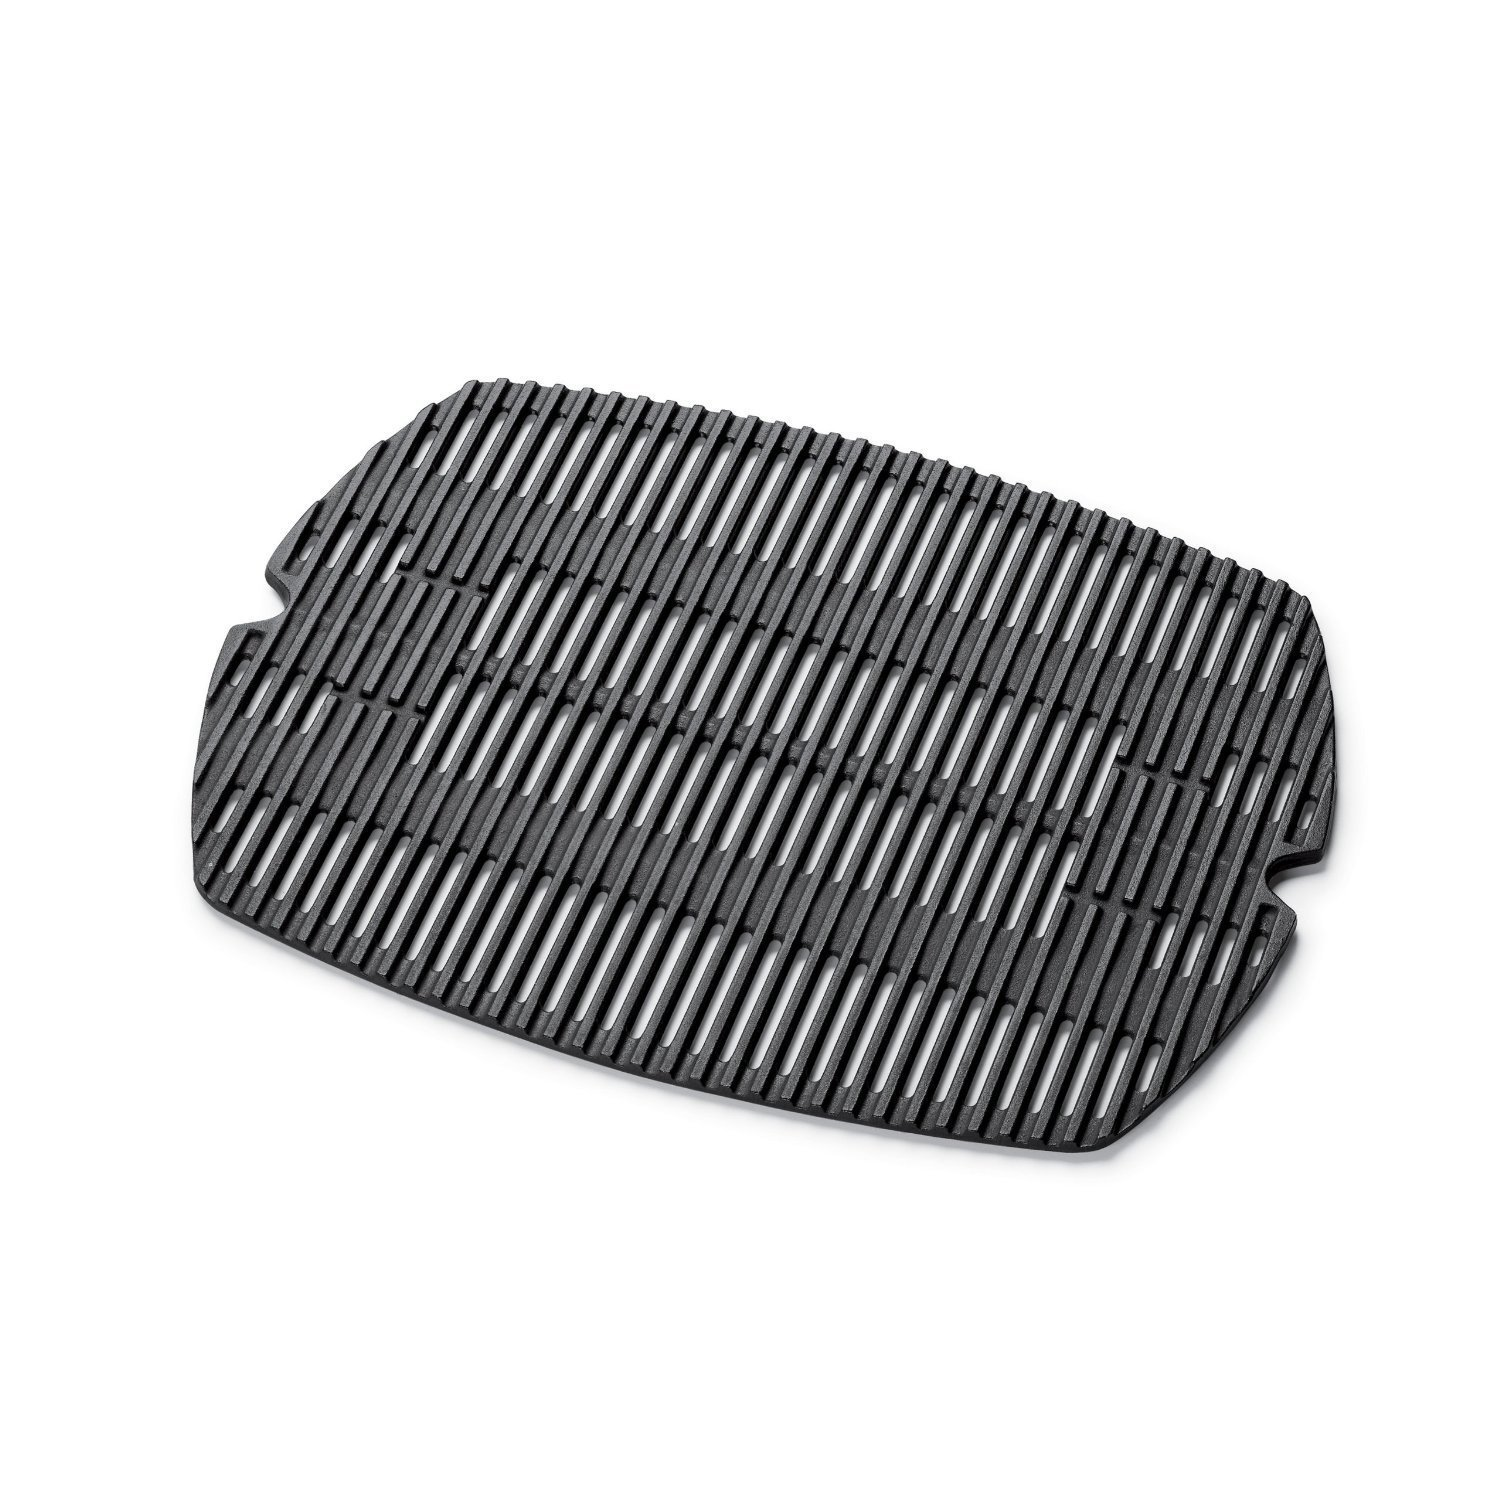 soldbbq Replacement Cooking Grates for Baby Q, Q 100, Q120 Gas Grills(Compatible with Weber Part #7582) by soldbbq